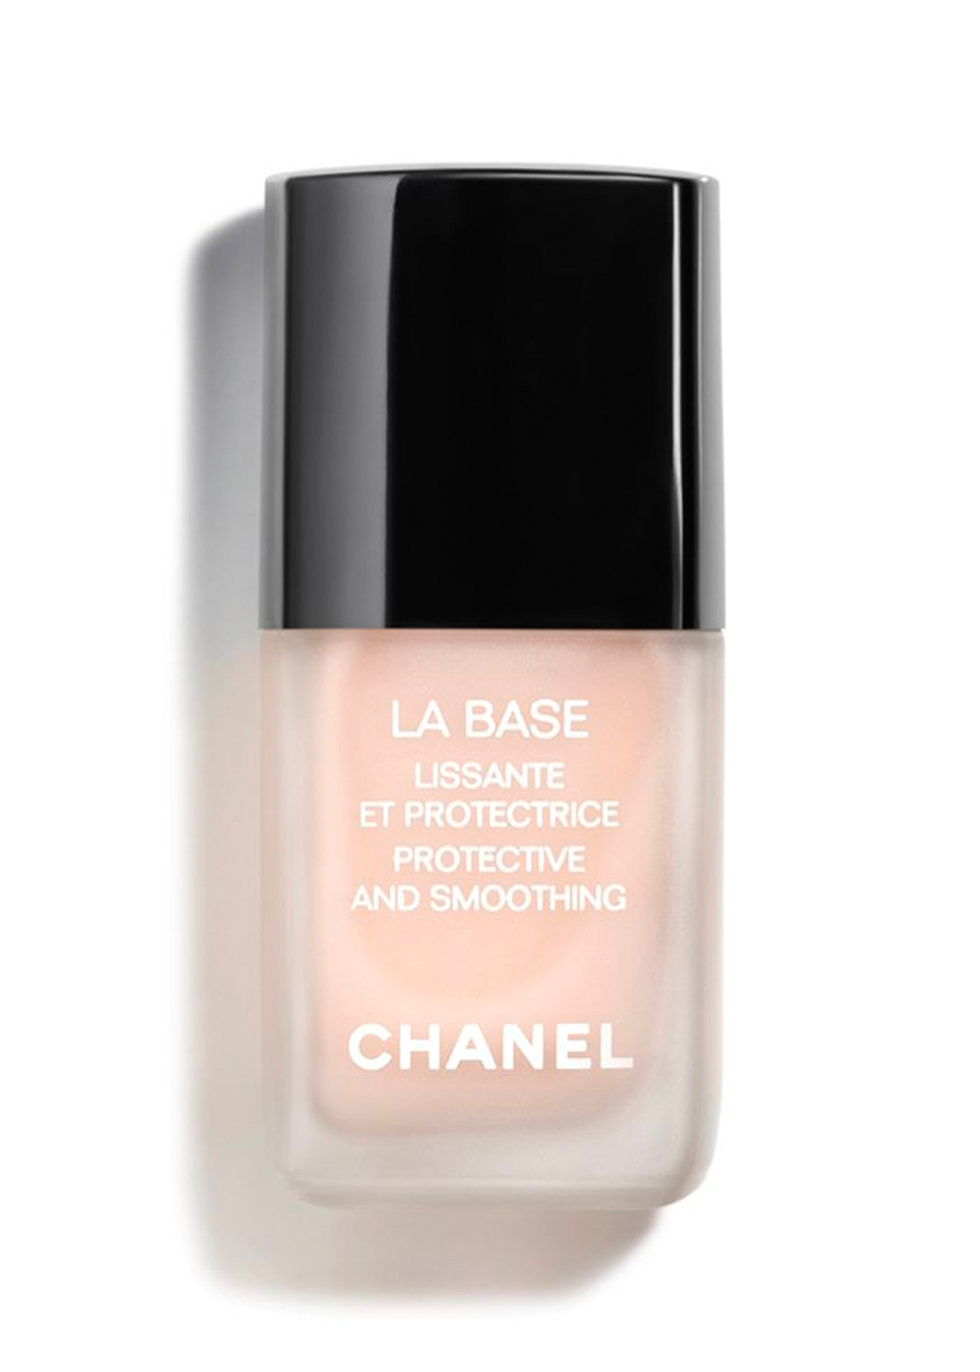 LA BASE~Protective And Smoothing